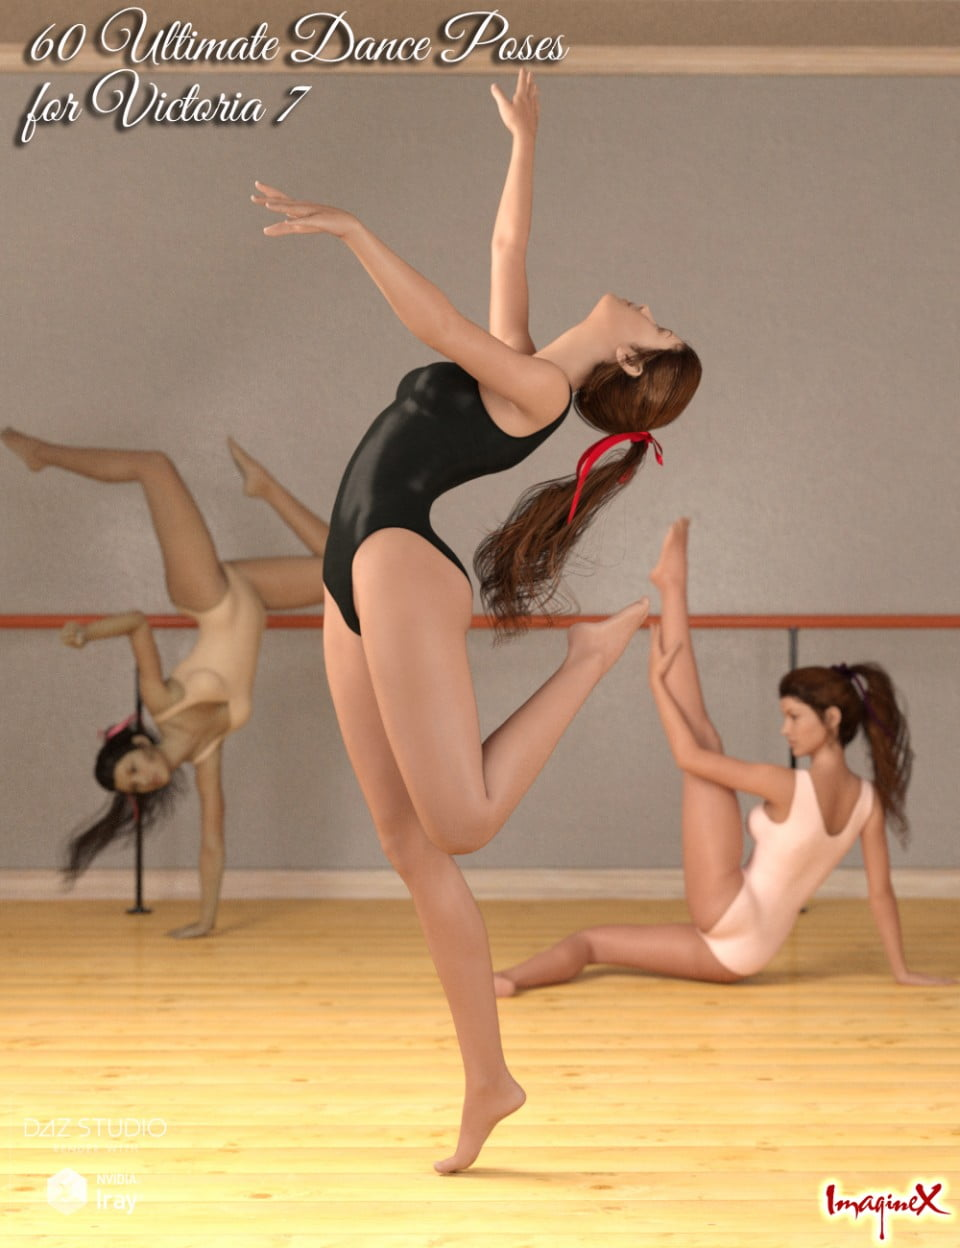 60 Ultimate Dance Poses for Victoria 7